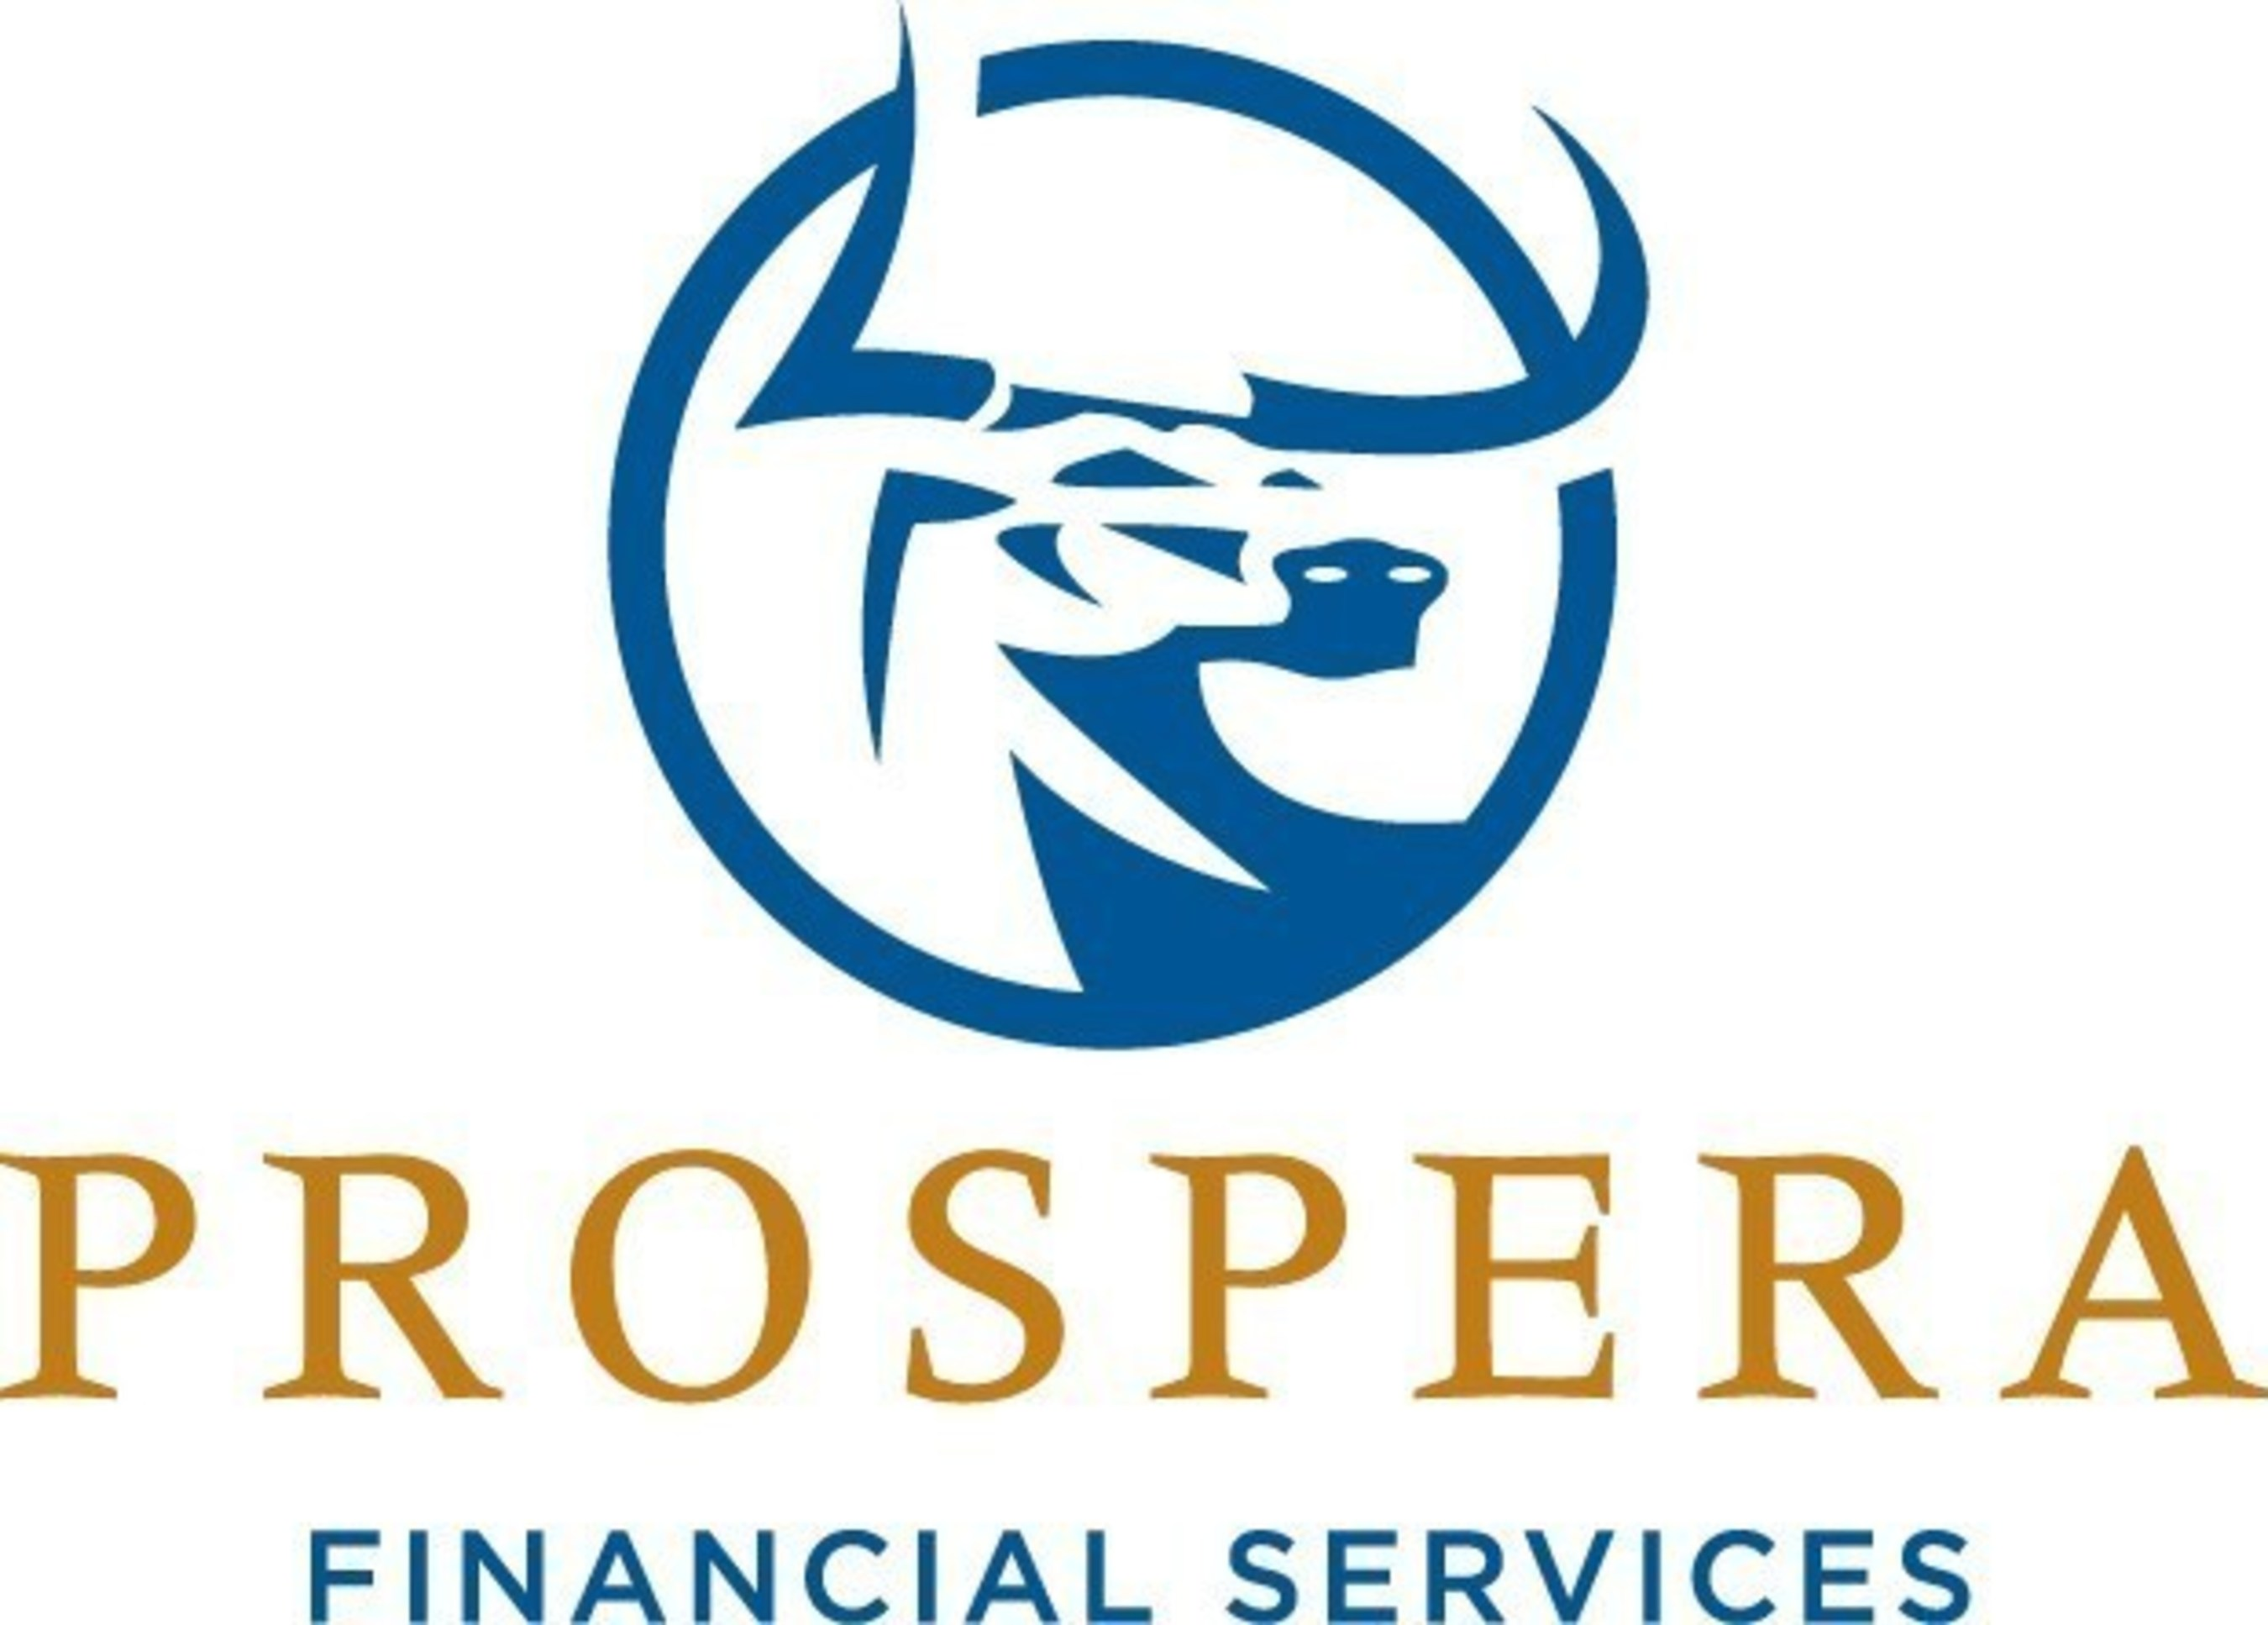 Prospera Financial Services is Proud to Announce the Affiliation of Pat Cope to the Firm, Adding